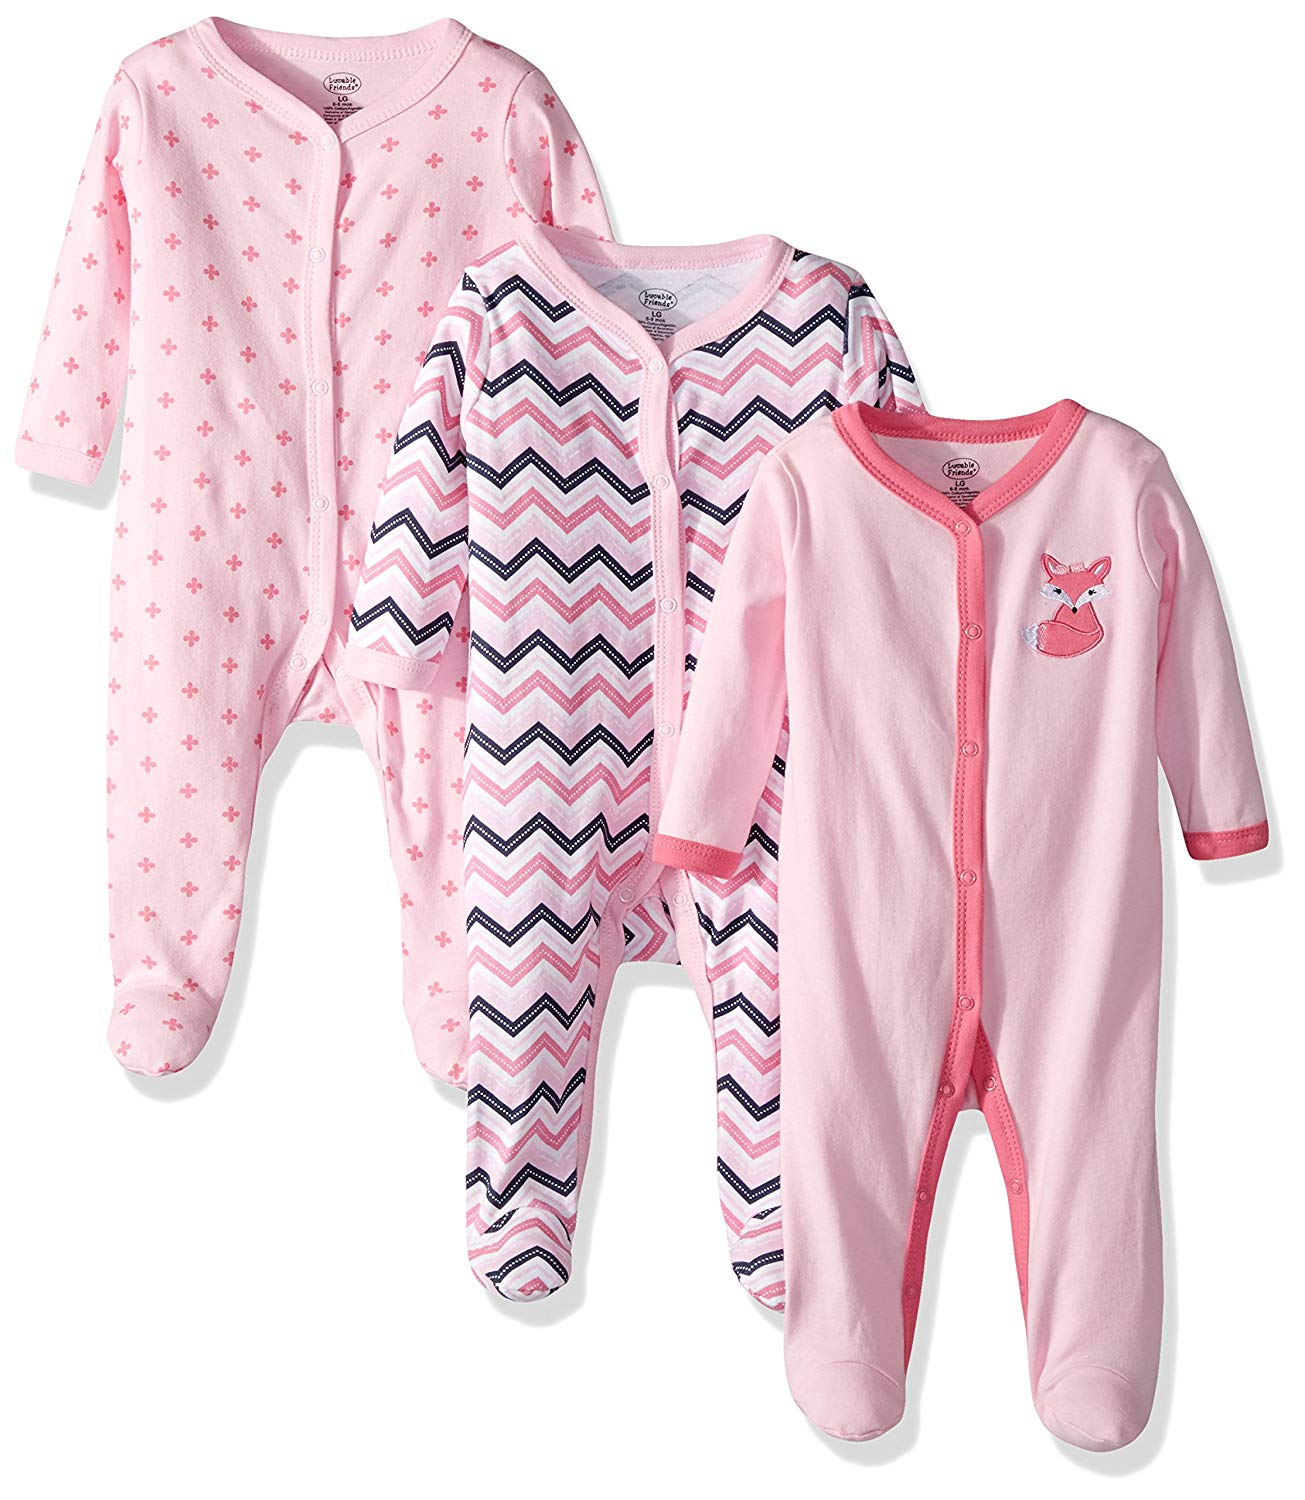 Cheap Baby Sleep And Play Find Baby Sleep And Play Deals On Line At